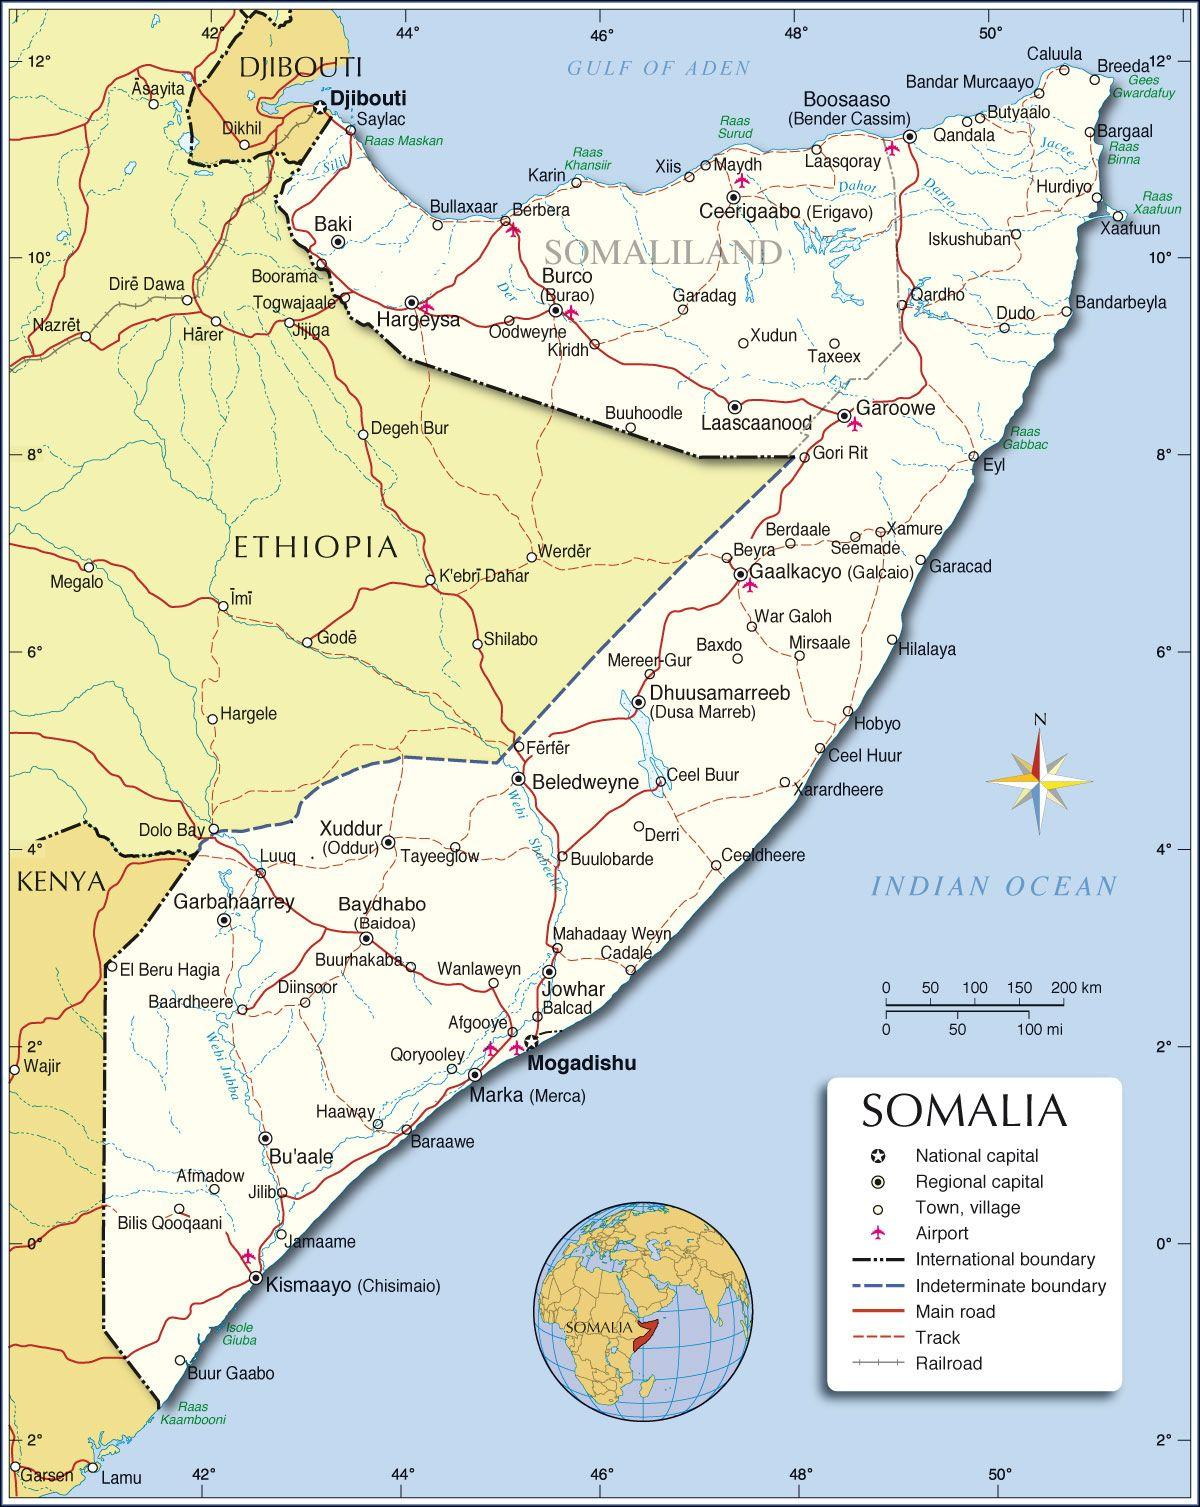 1200x1507px Somalia Backgrounds by Alan Fincher